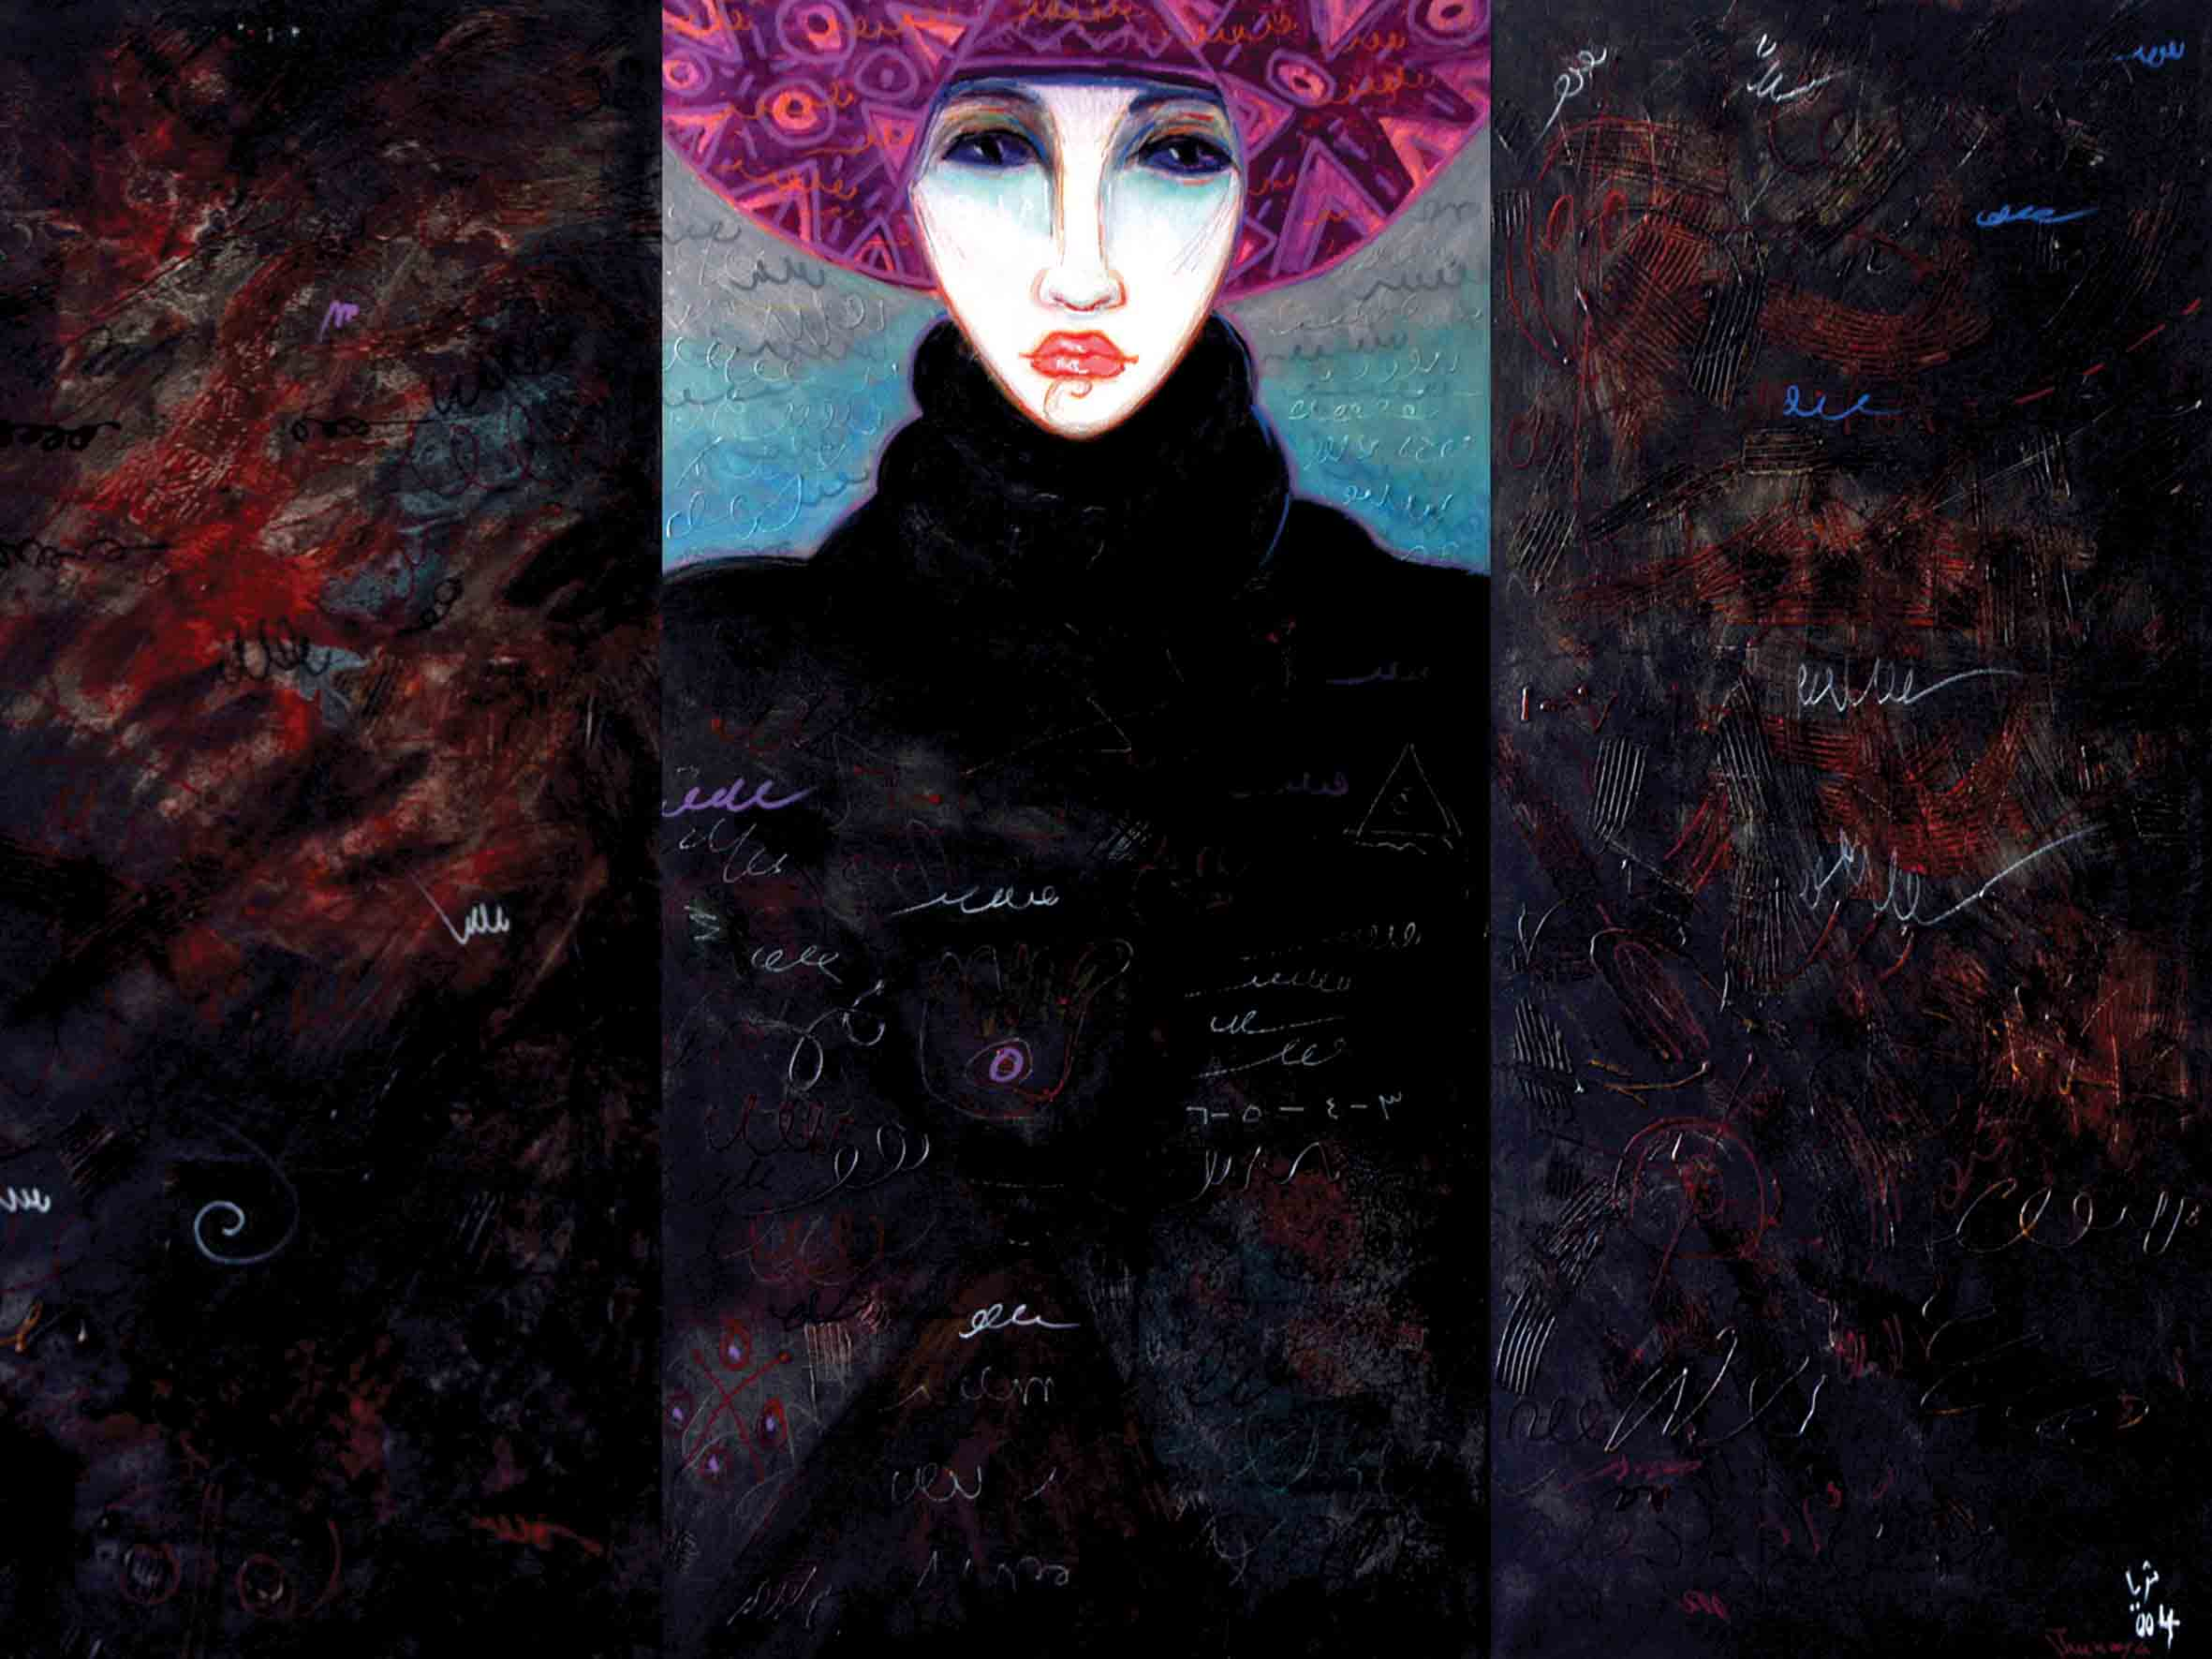 Womanly Nights II, 2004